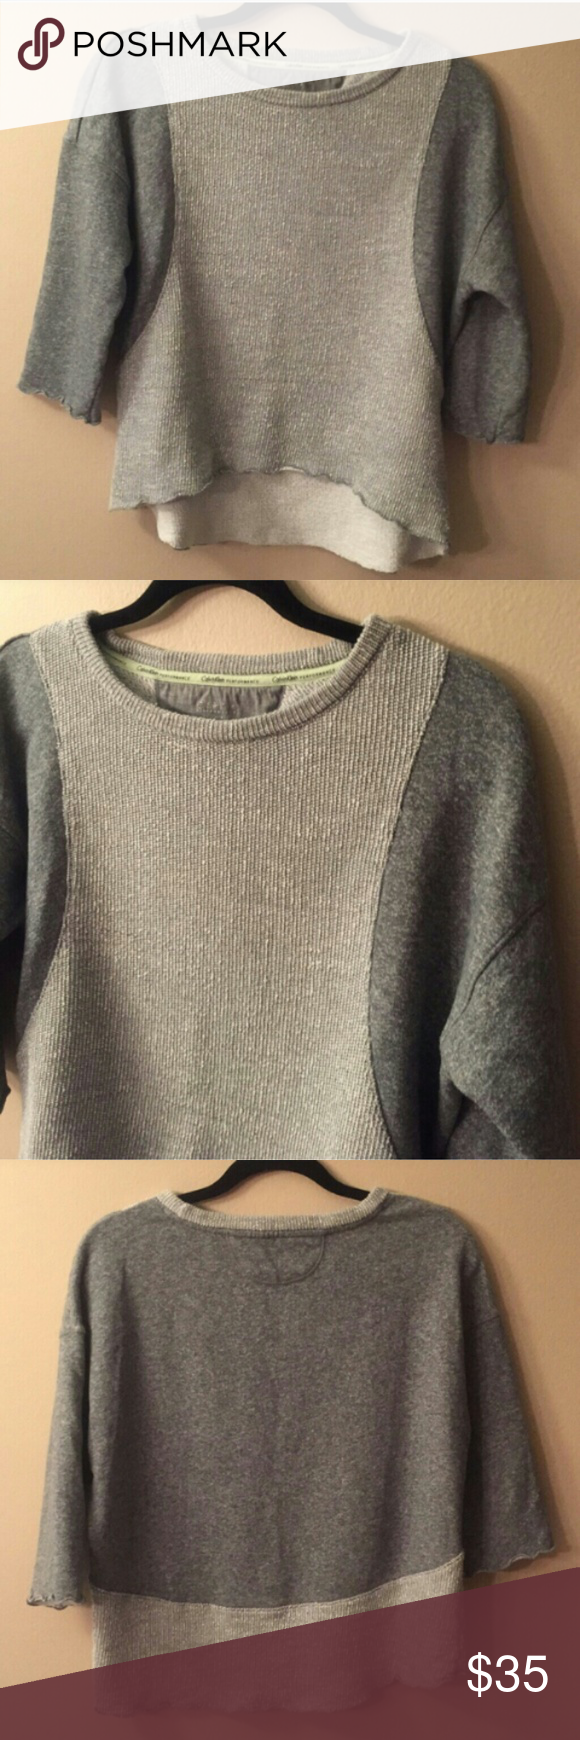 CALVIN KLEIN PERFORMANCE oversized EUC!! Oversized and super comfortable three-quarter sleeves and high low hem two-tone gray quick-dry knit material made flat chest measures 20inches  and a half in length from shoulder to hem is 24 inches and 20 inches in front Calvin Klein Sweaters Crew & Scoop Necks